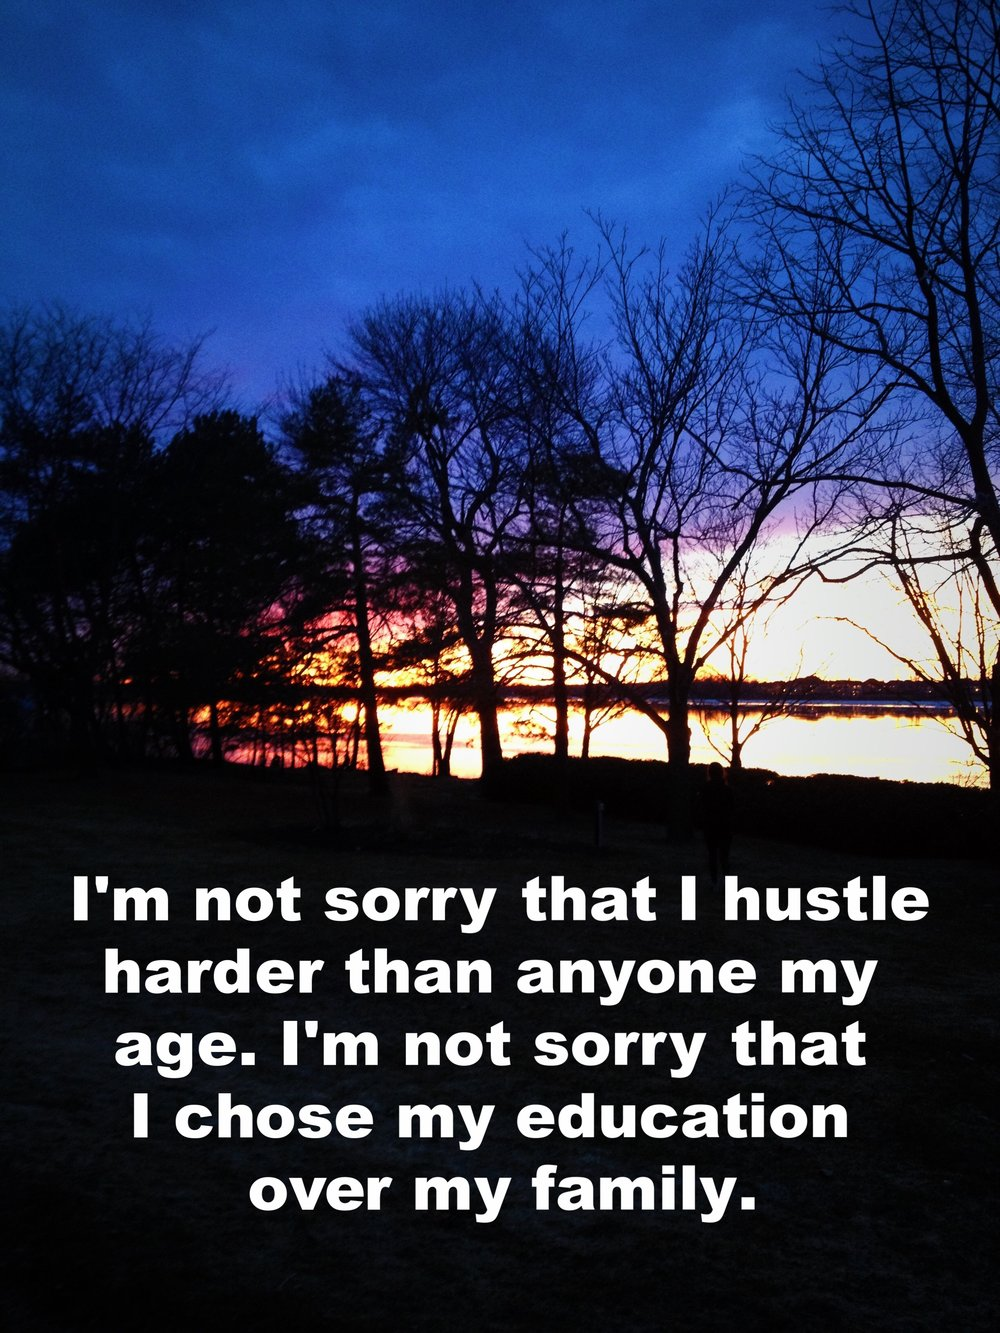 "P. December 2 2016 Image of a sunset over a river. The ground is dark and the trees are silhouettes against the colorful sky. ""I'm not sorry that I hustle harder than anyone my age. I'm not sorry that I chose my education over my family"" is overlaid."